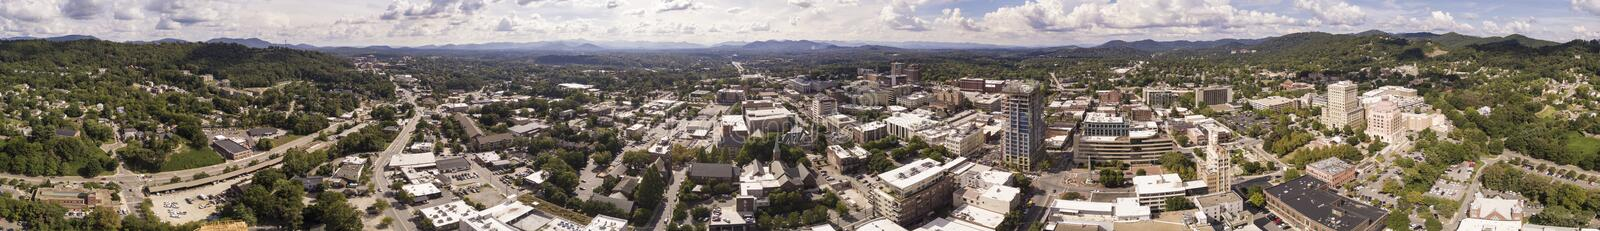 Seamless aerial 360 degree panorama of downtown Asheville, North. Carolina royalty free stock photo